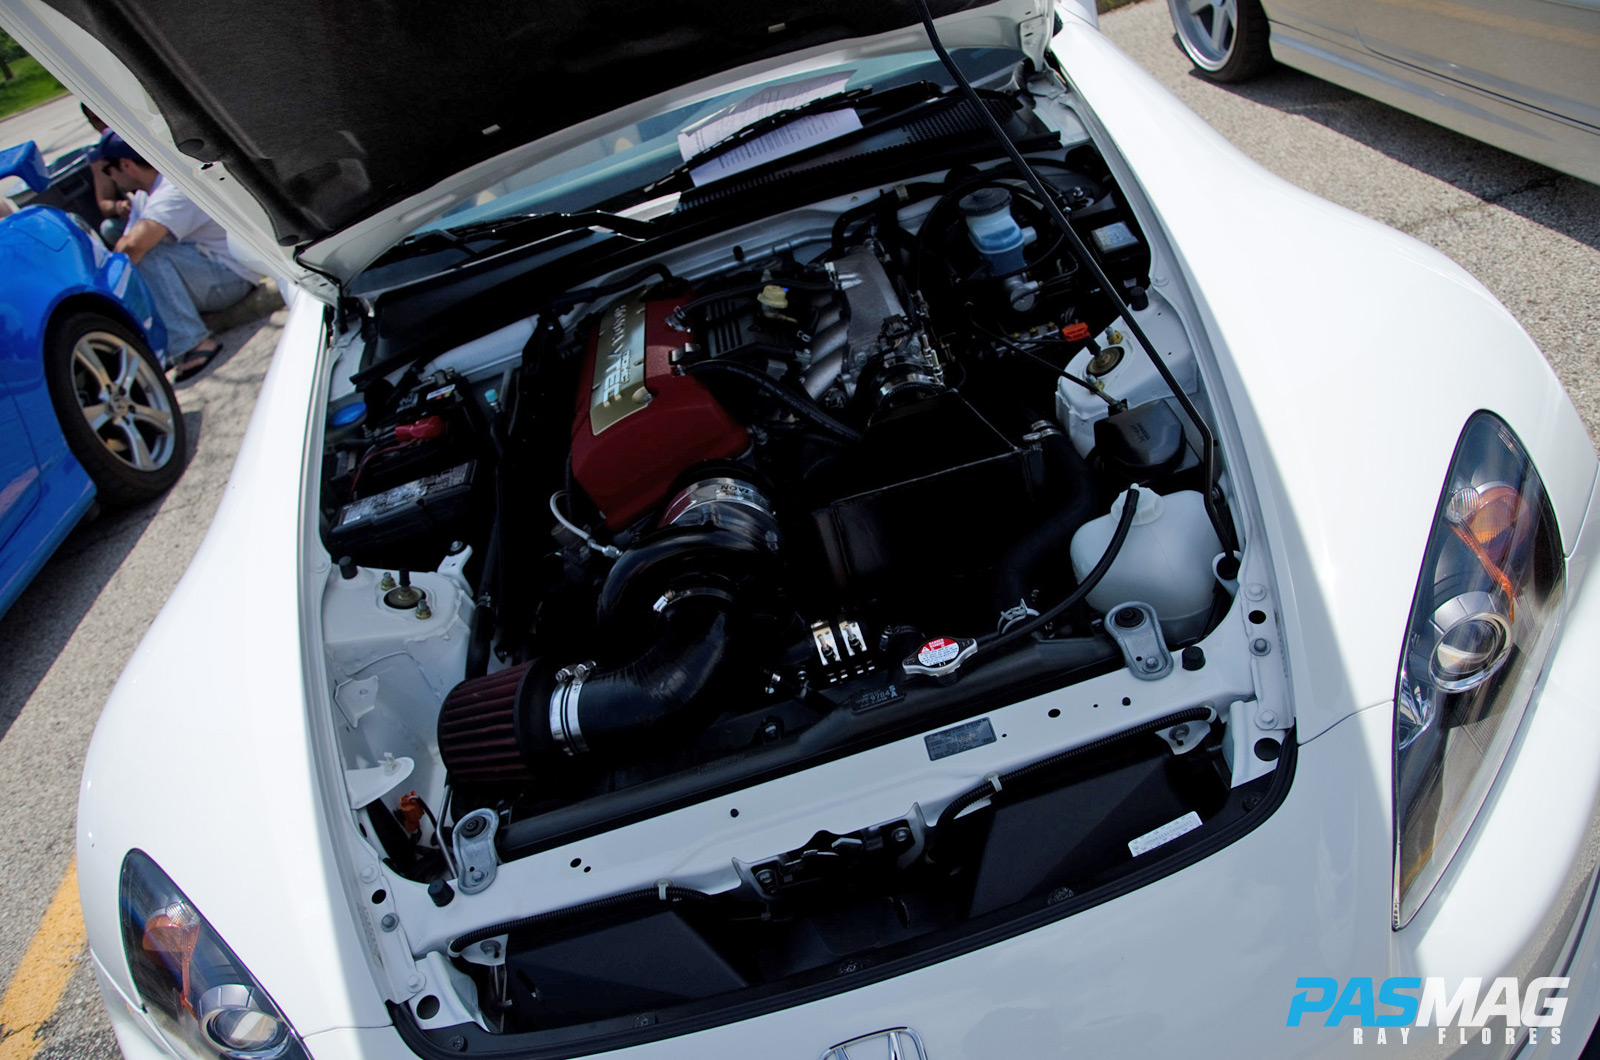 PASMAG CMN Car Show Gurnee Illinois June 1 2014 Ray Flores Event Photo Coverage DSC 5905